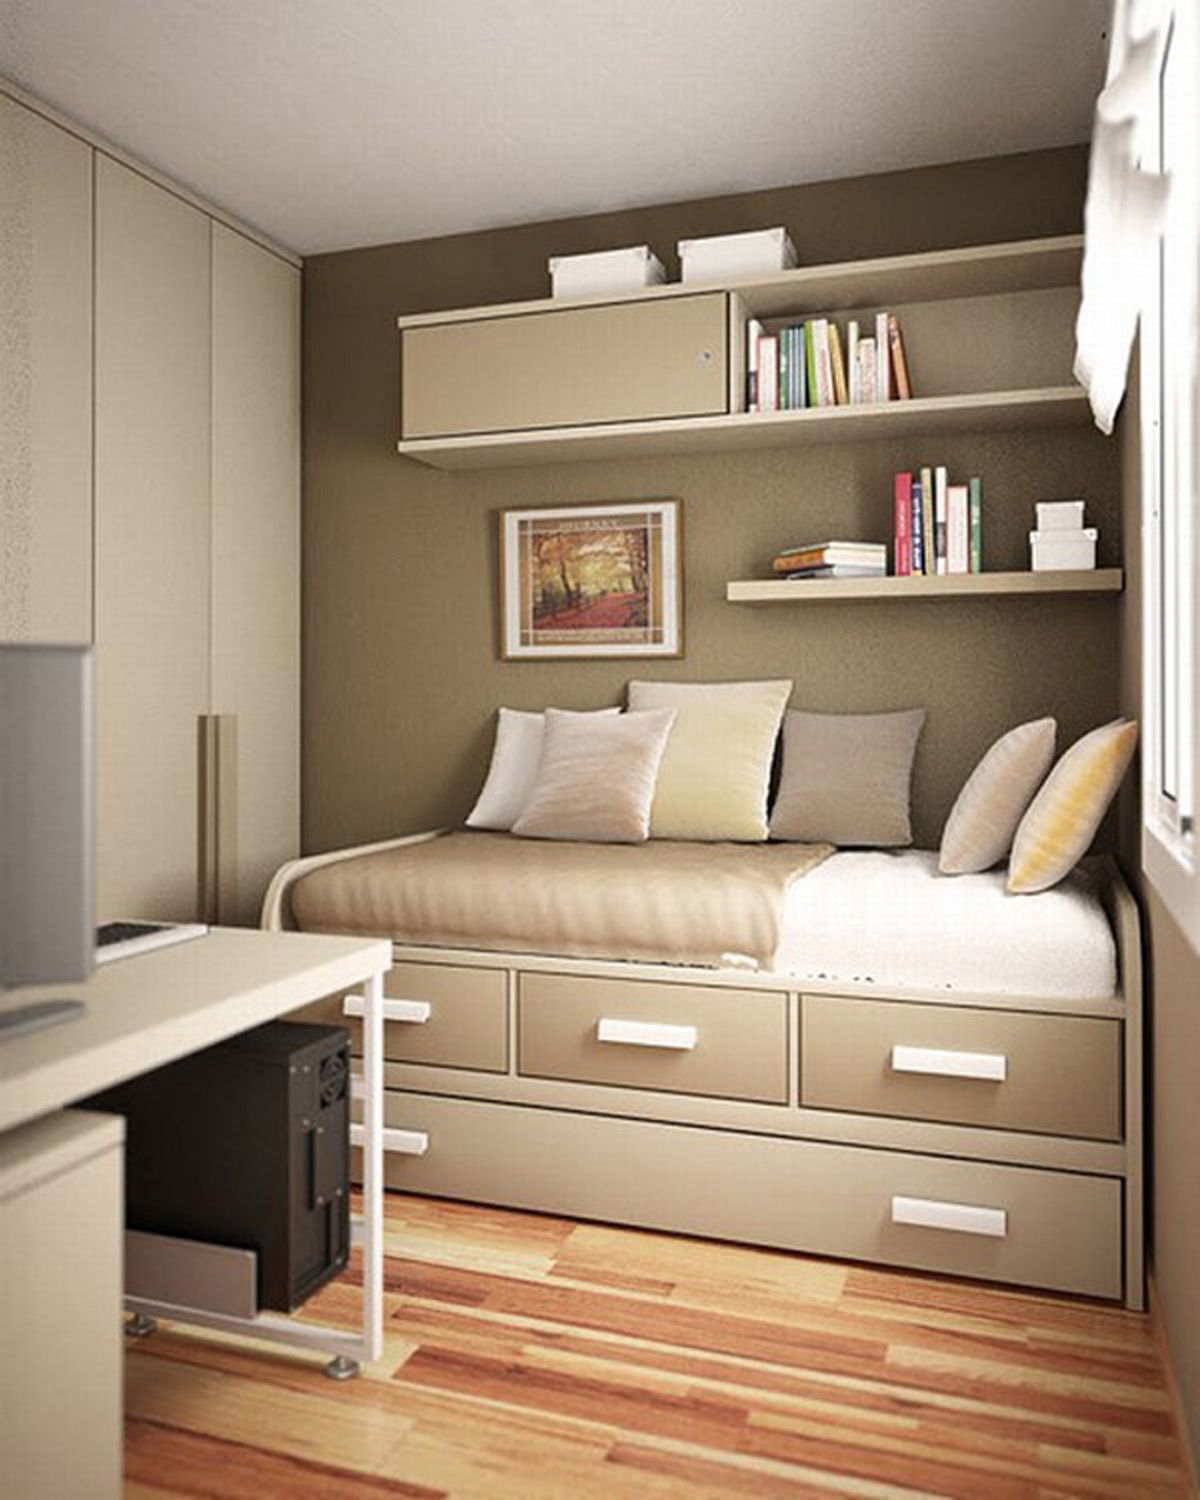 contemporary small bedroom ideas - Small Bedroom Decorating Ideas